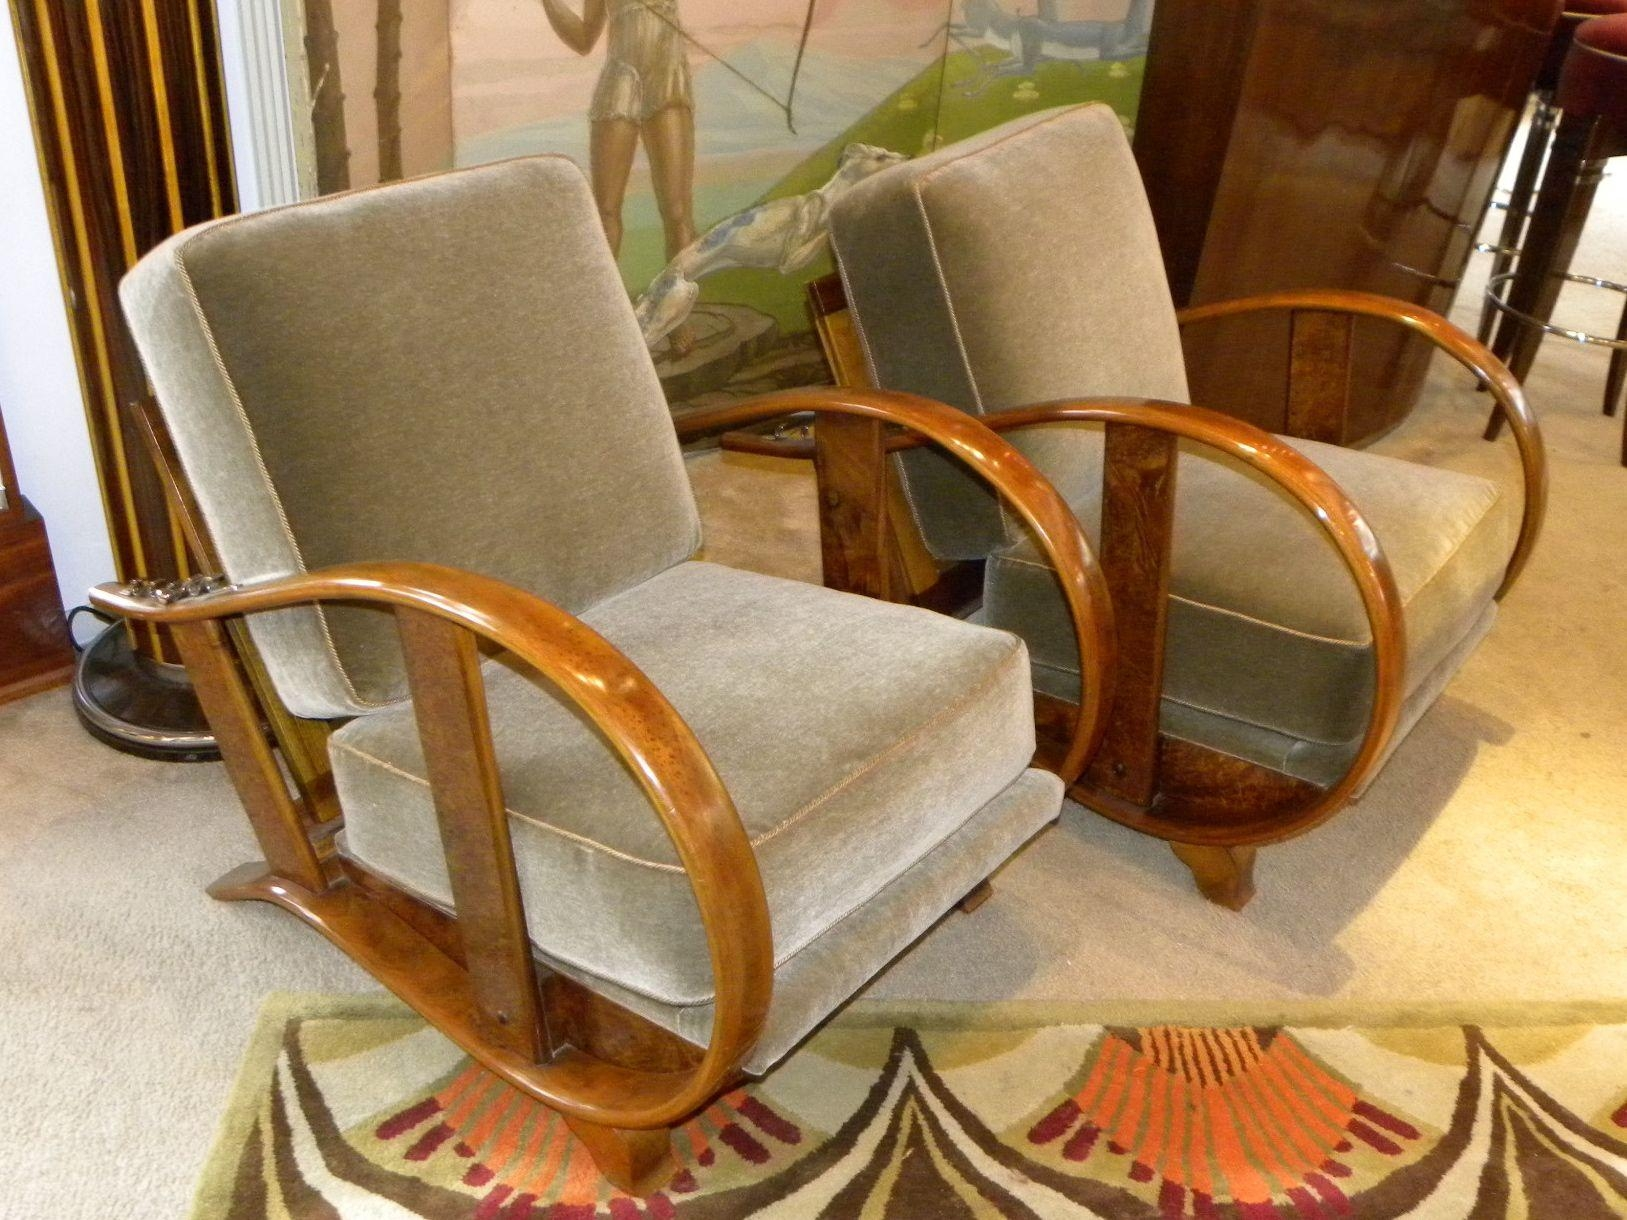 Art Deco Furniture Sold | Seating Items | Art Deco Collection Regarding Art Deco Sofa And Chairs (Image 10 of 20)